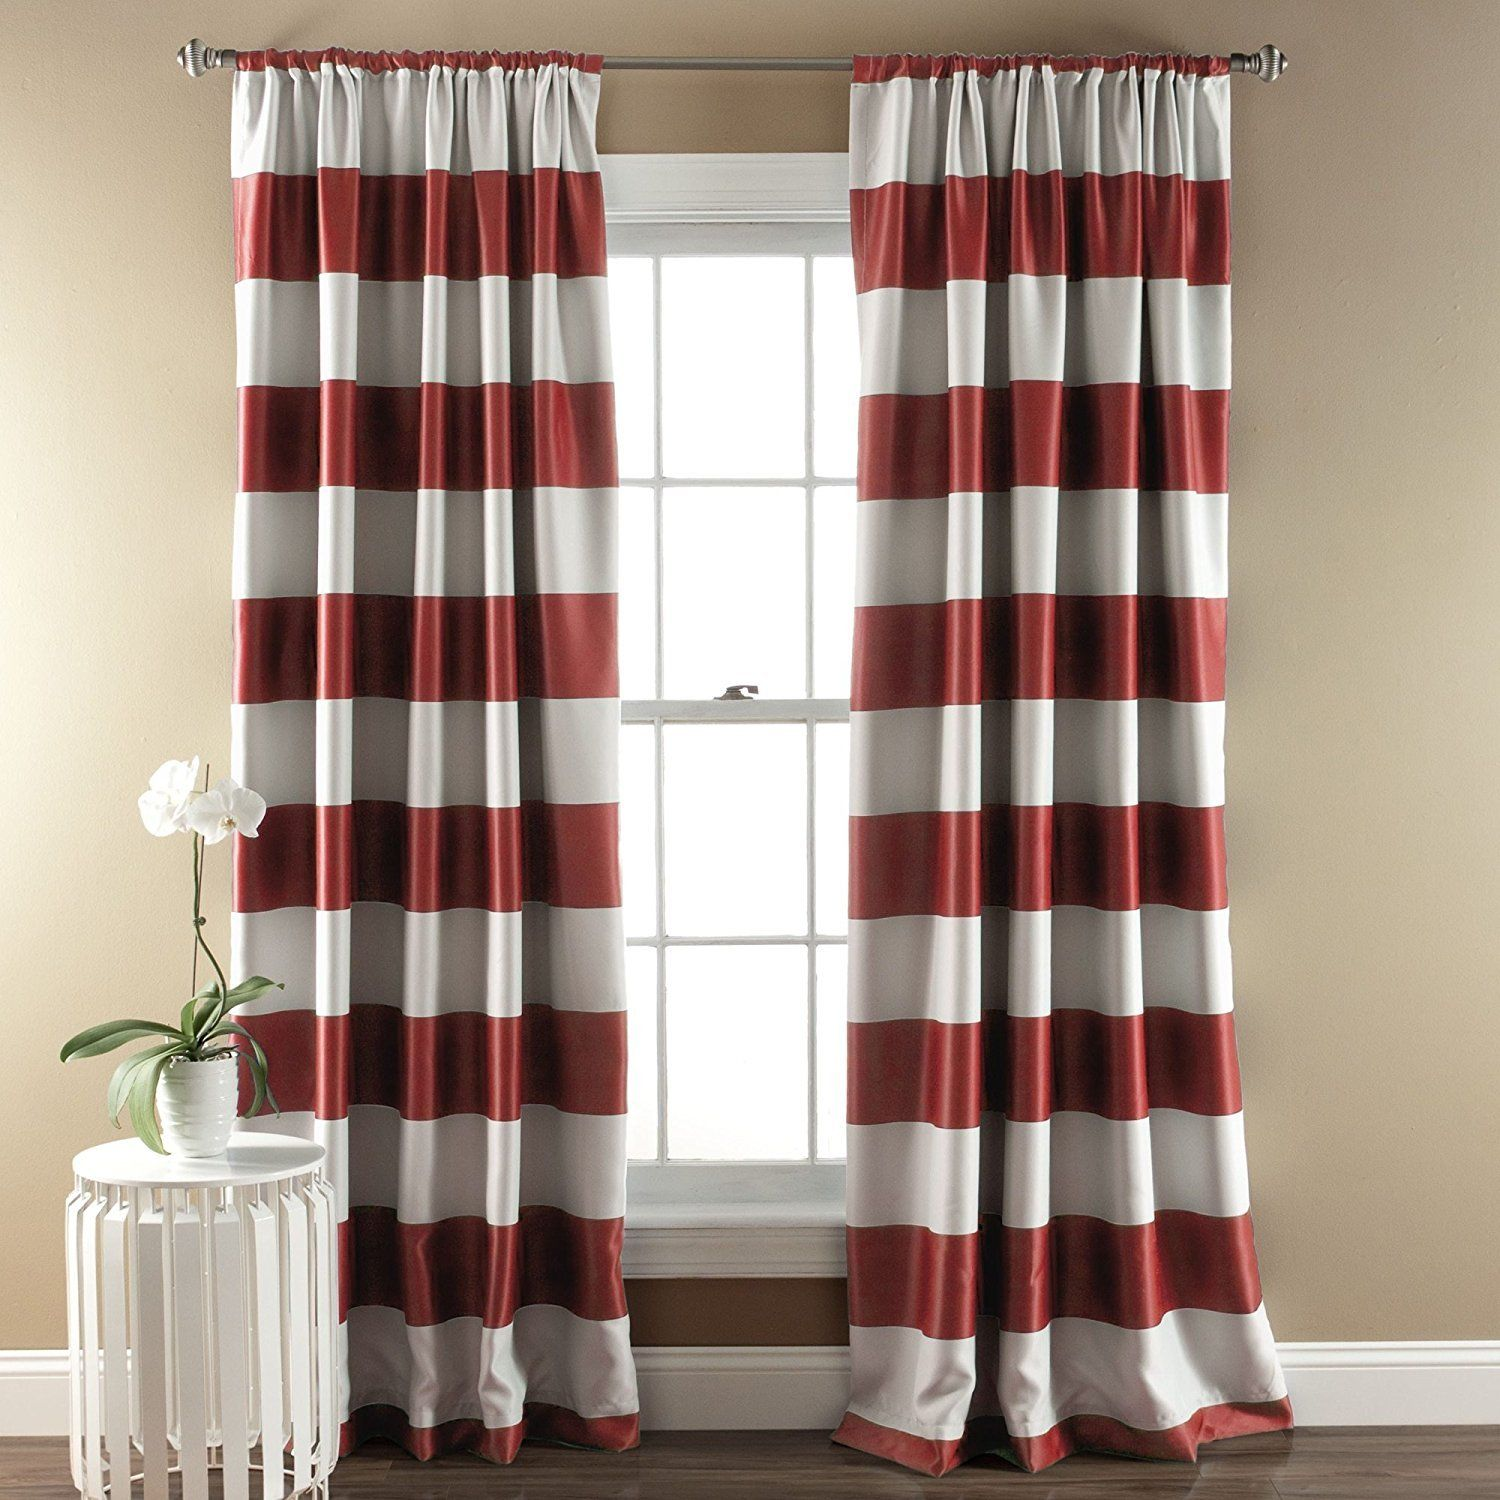 84 Inch Girls Burgundy Red White Rugby Stripes Curtains Panel Pair Set Red Color Drapes Cabana Striped Pattern Window Striped Room Panel Curtains Red Curtains